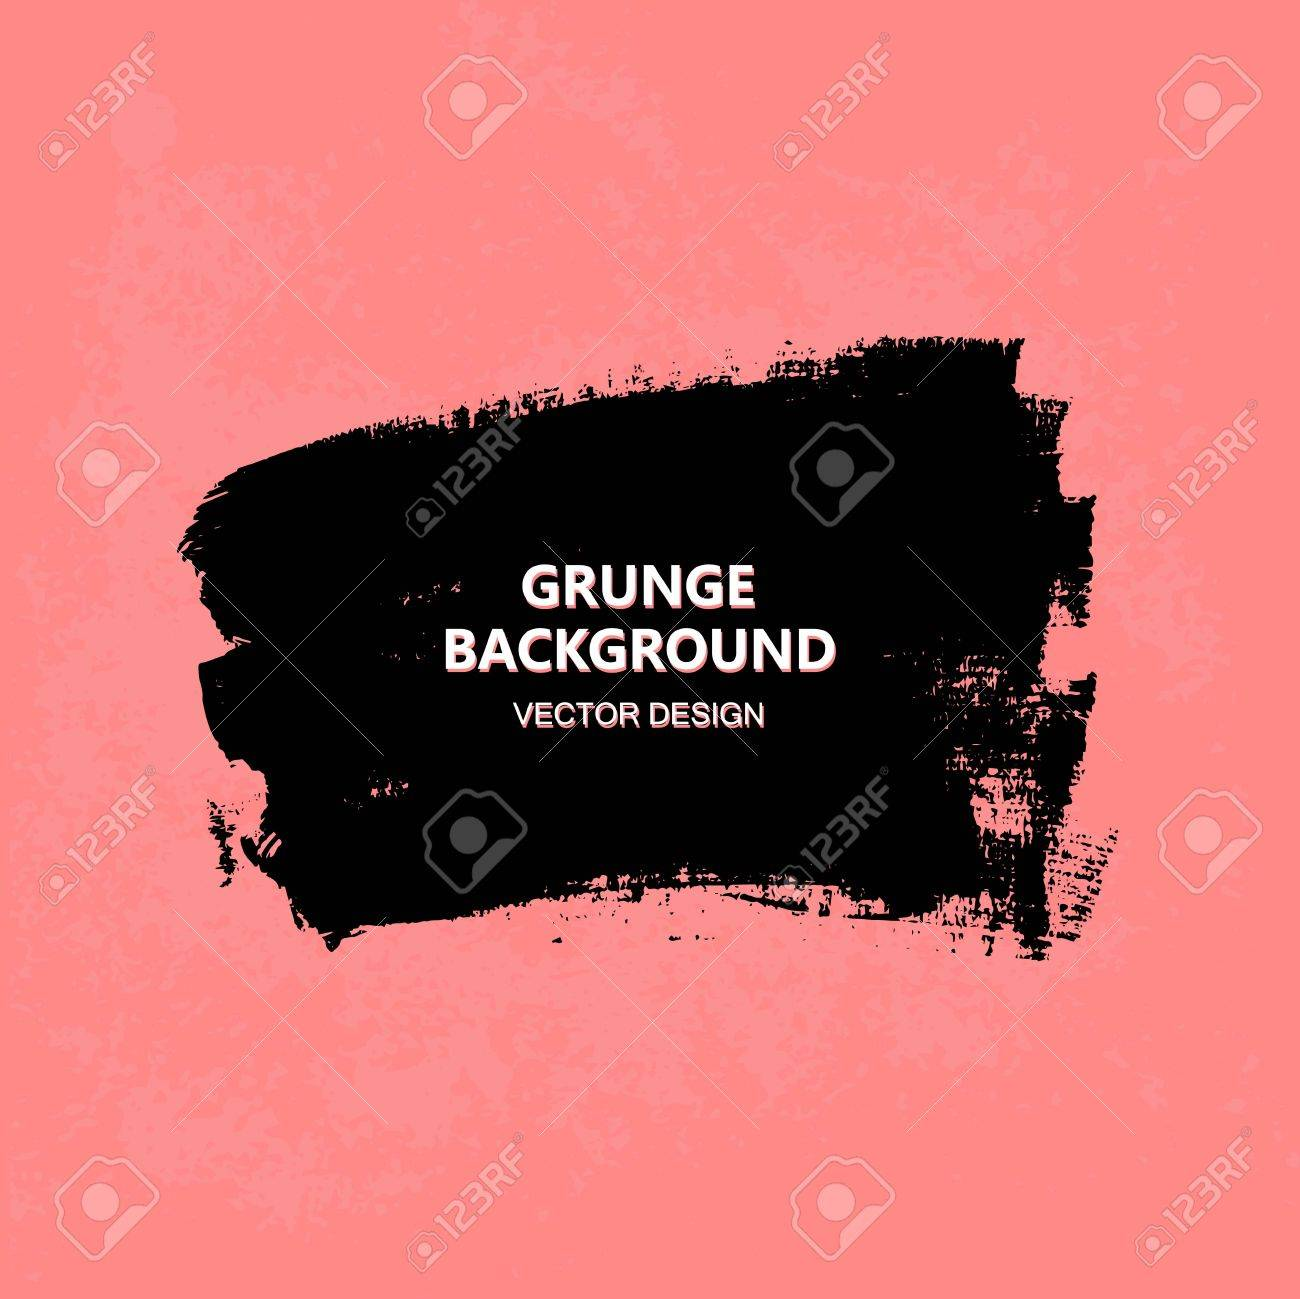 Black paint design element, place for text information, quote. Dirty grunge background. - 67323242